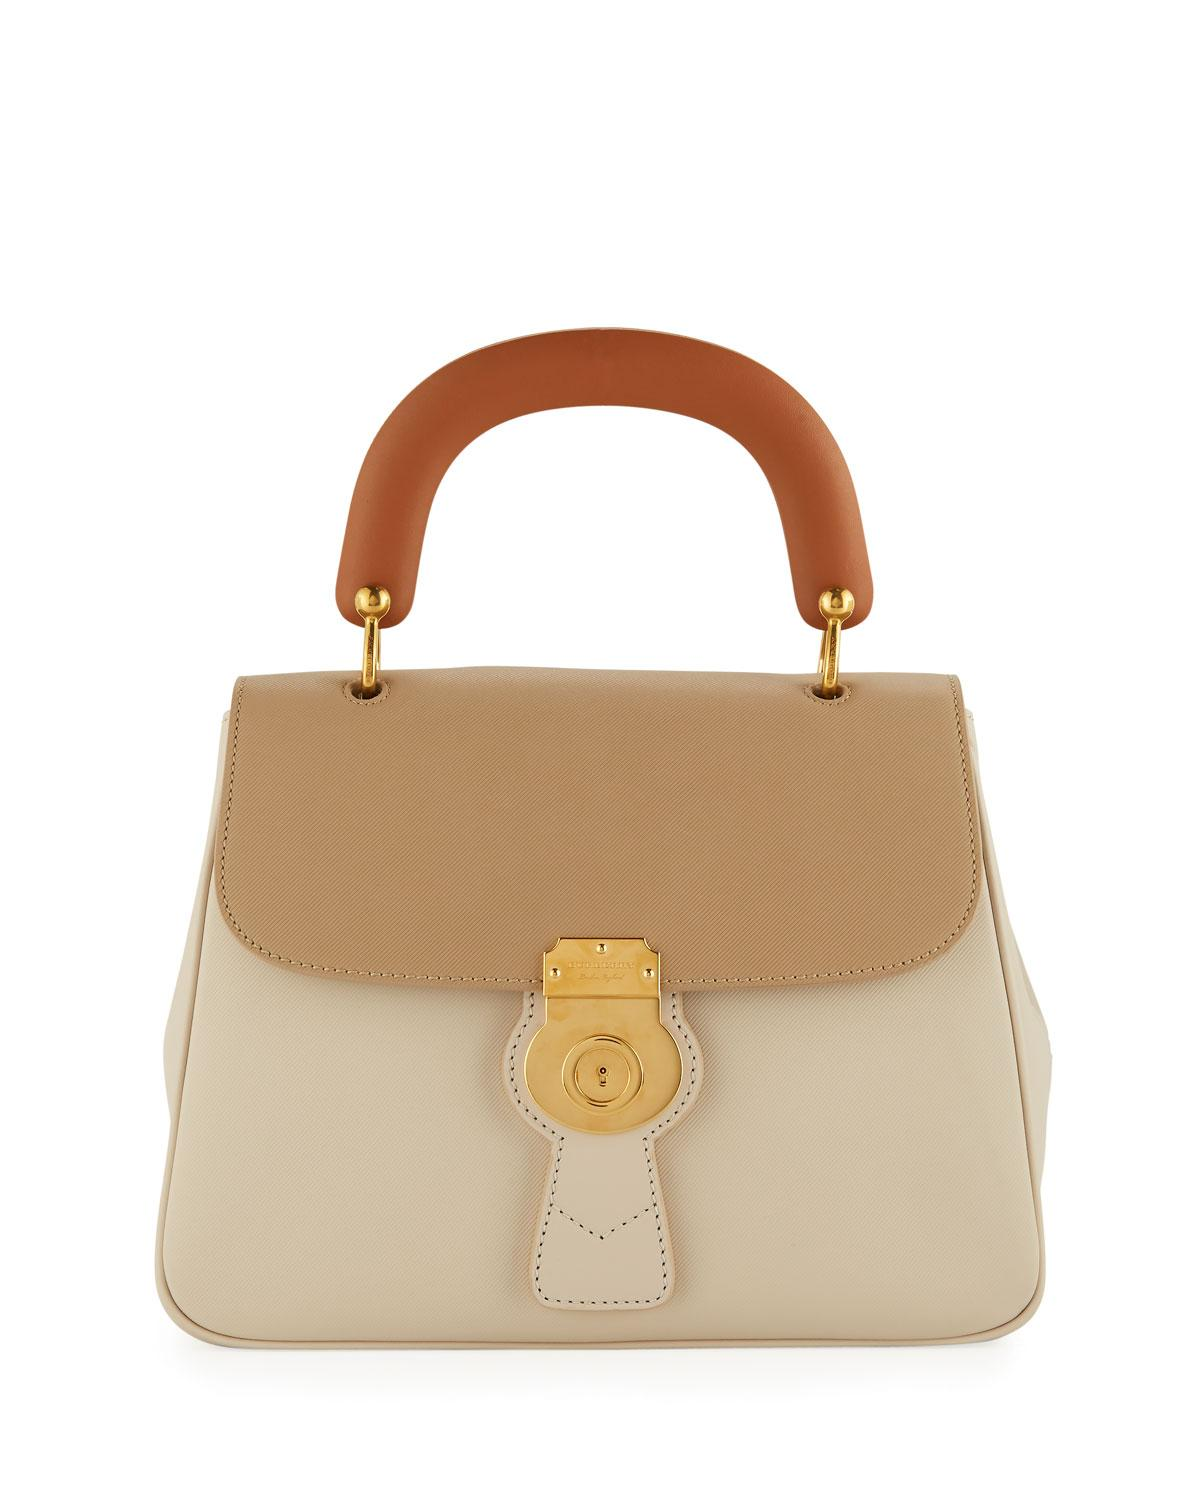 f6e48d7bcbc Burberry Trench Large Leather Top-Handle Satchel Bag, Limestone/Honey In  Limestone Honey